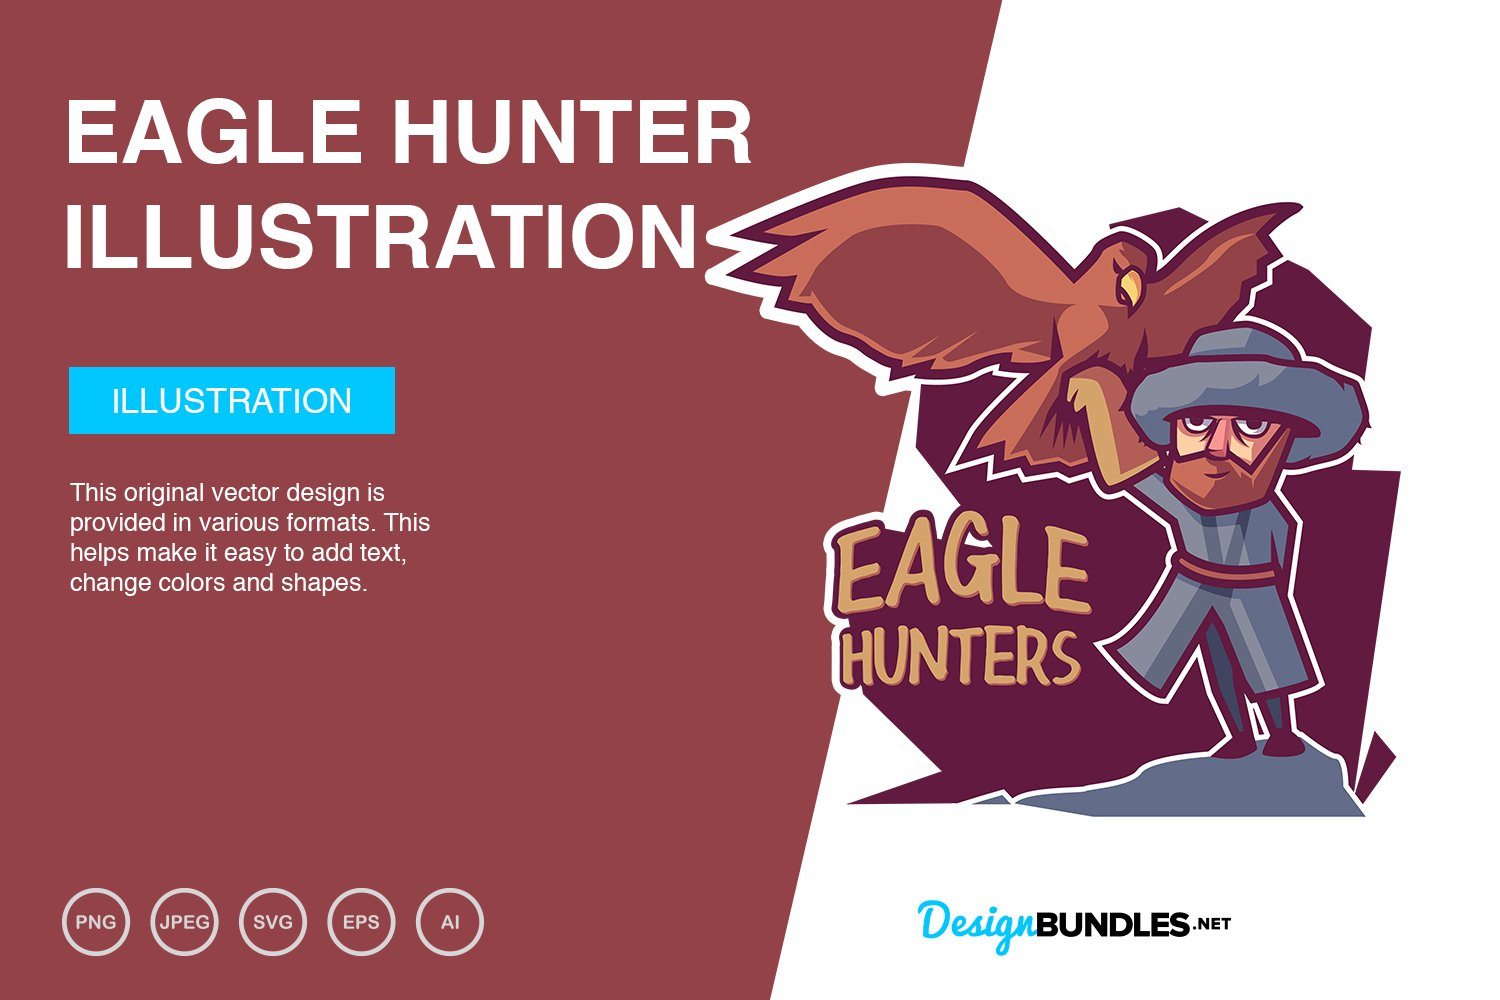 Eagle Hunter Vector Illustration example image 1